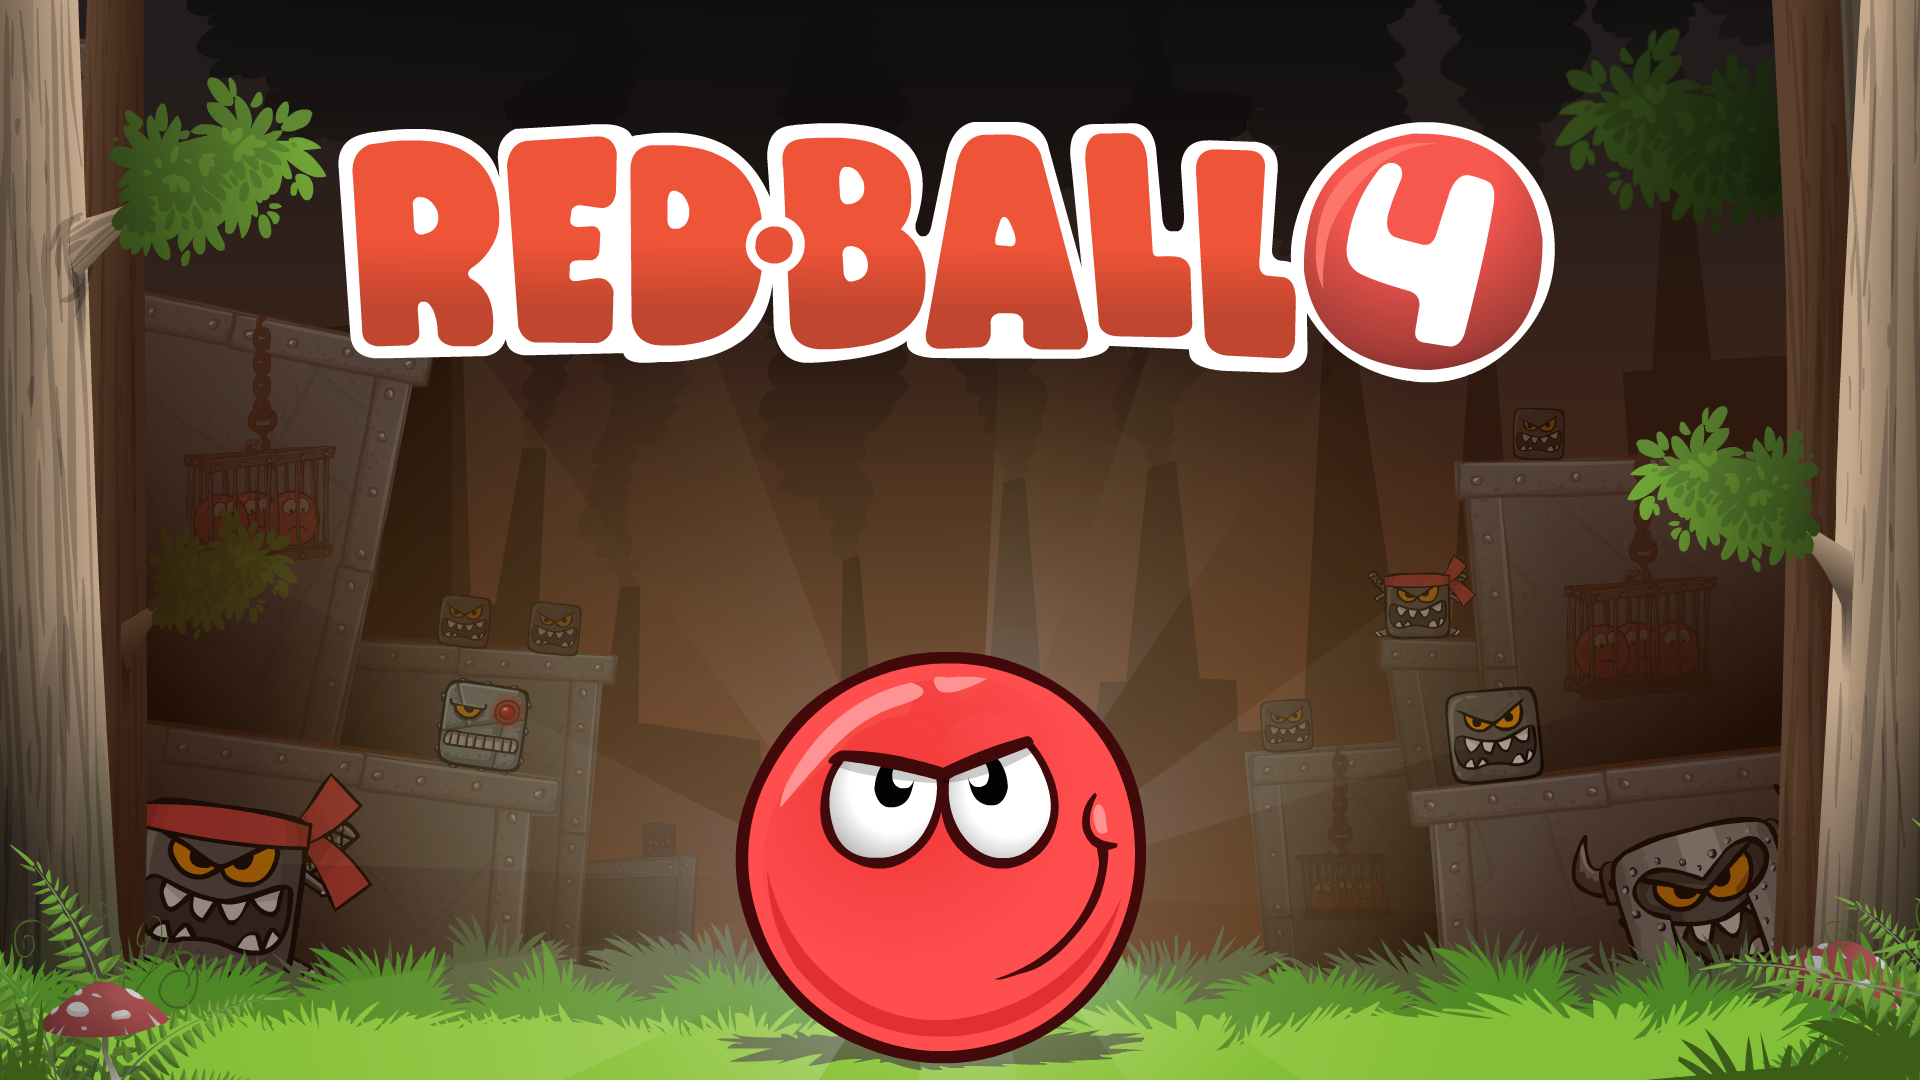 a09e31dd6 Red Ball 4: Amazon.co.uk: Appstore for Android